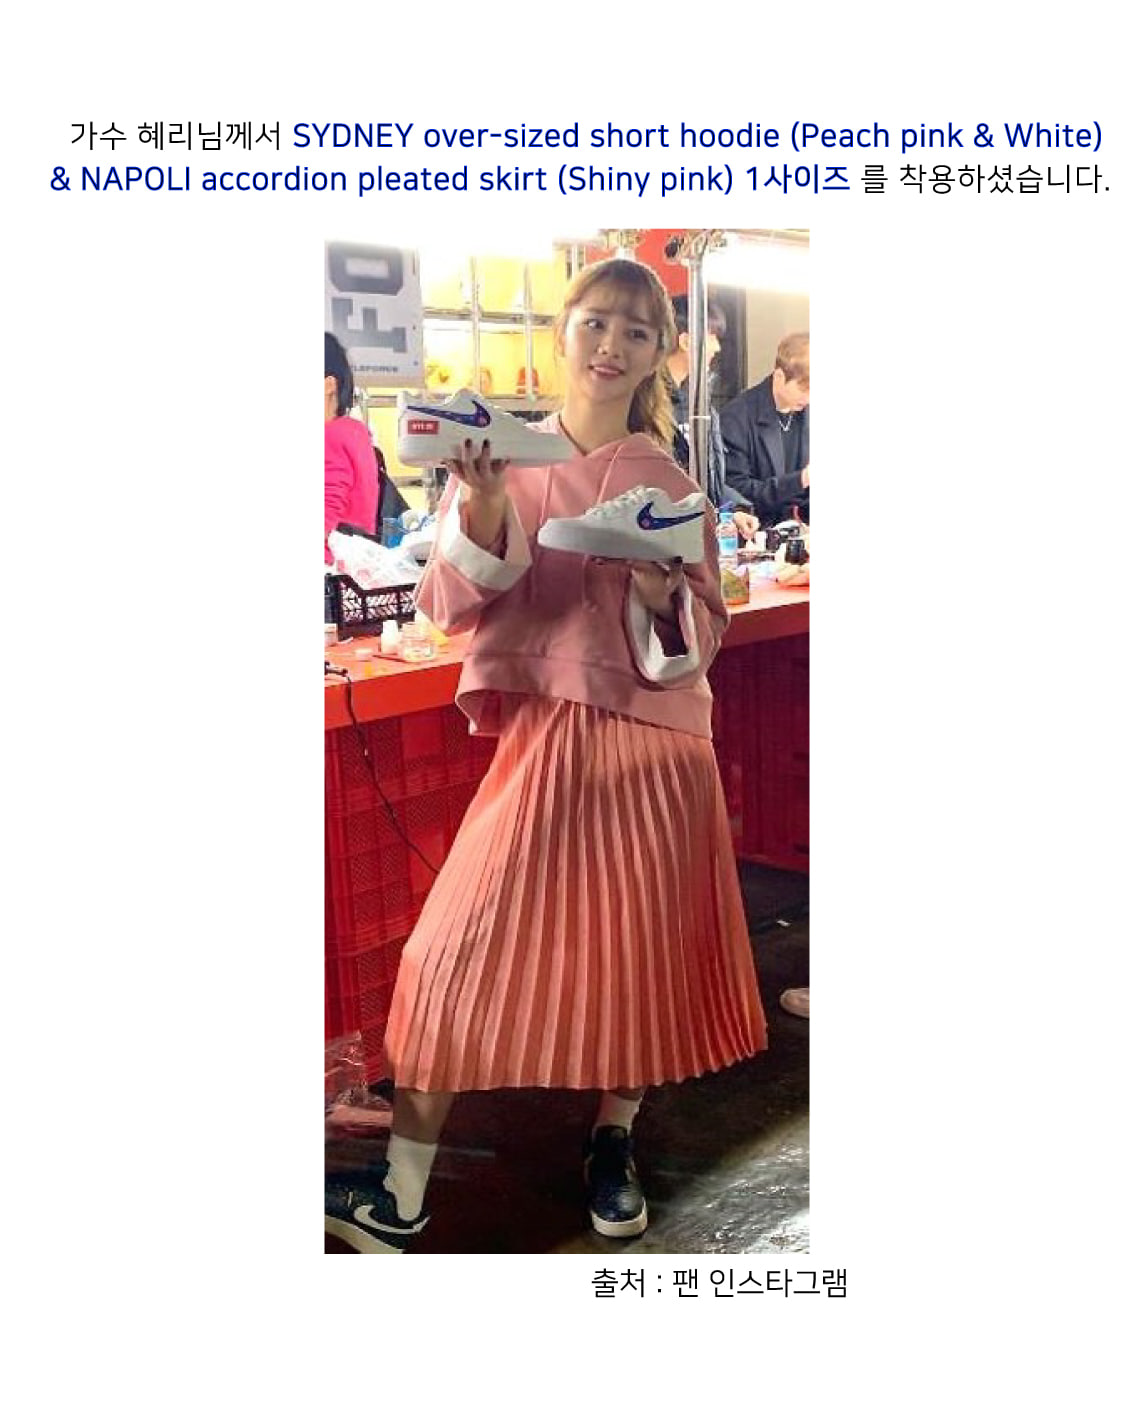 e33137a47a 앤유] [혜리 착용] NAPOLI accordion pleated skirt (Shiny pink) - AND YOU